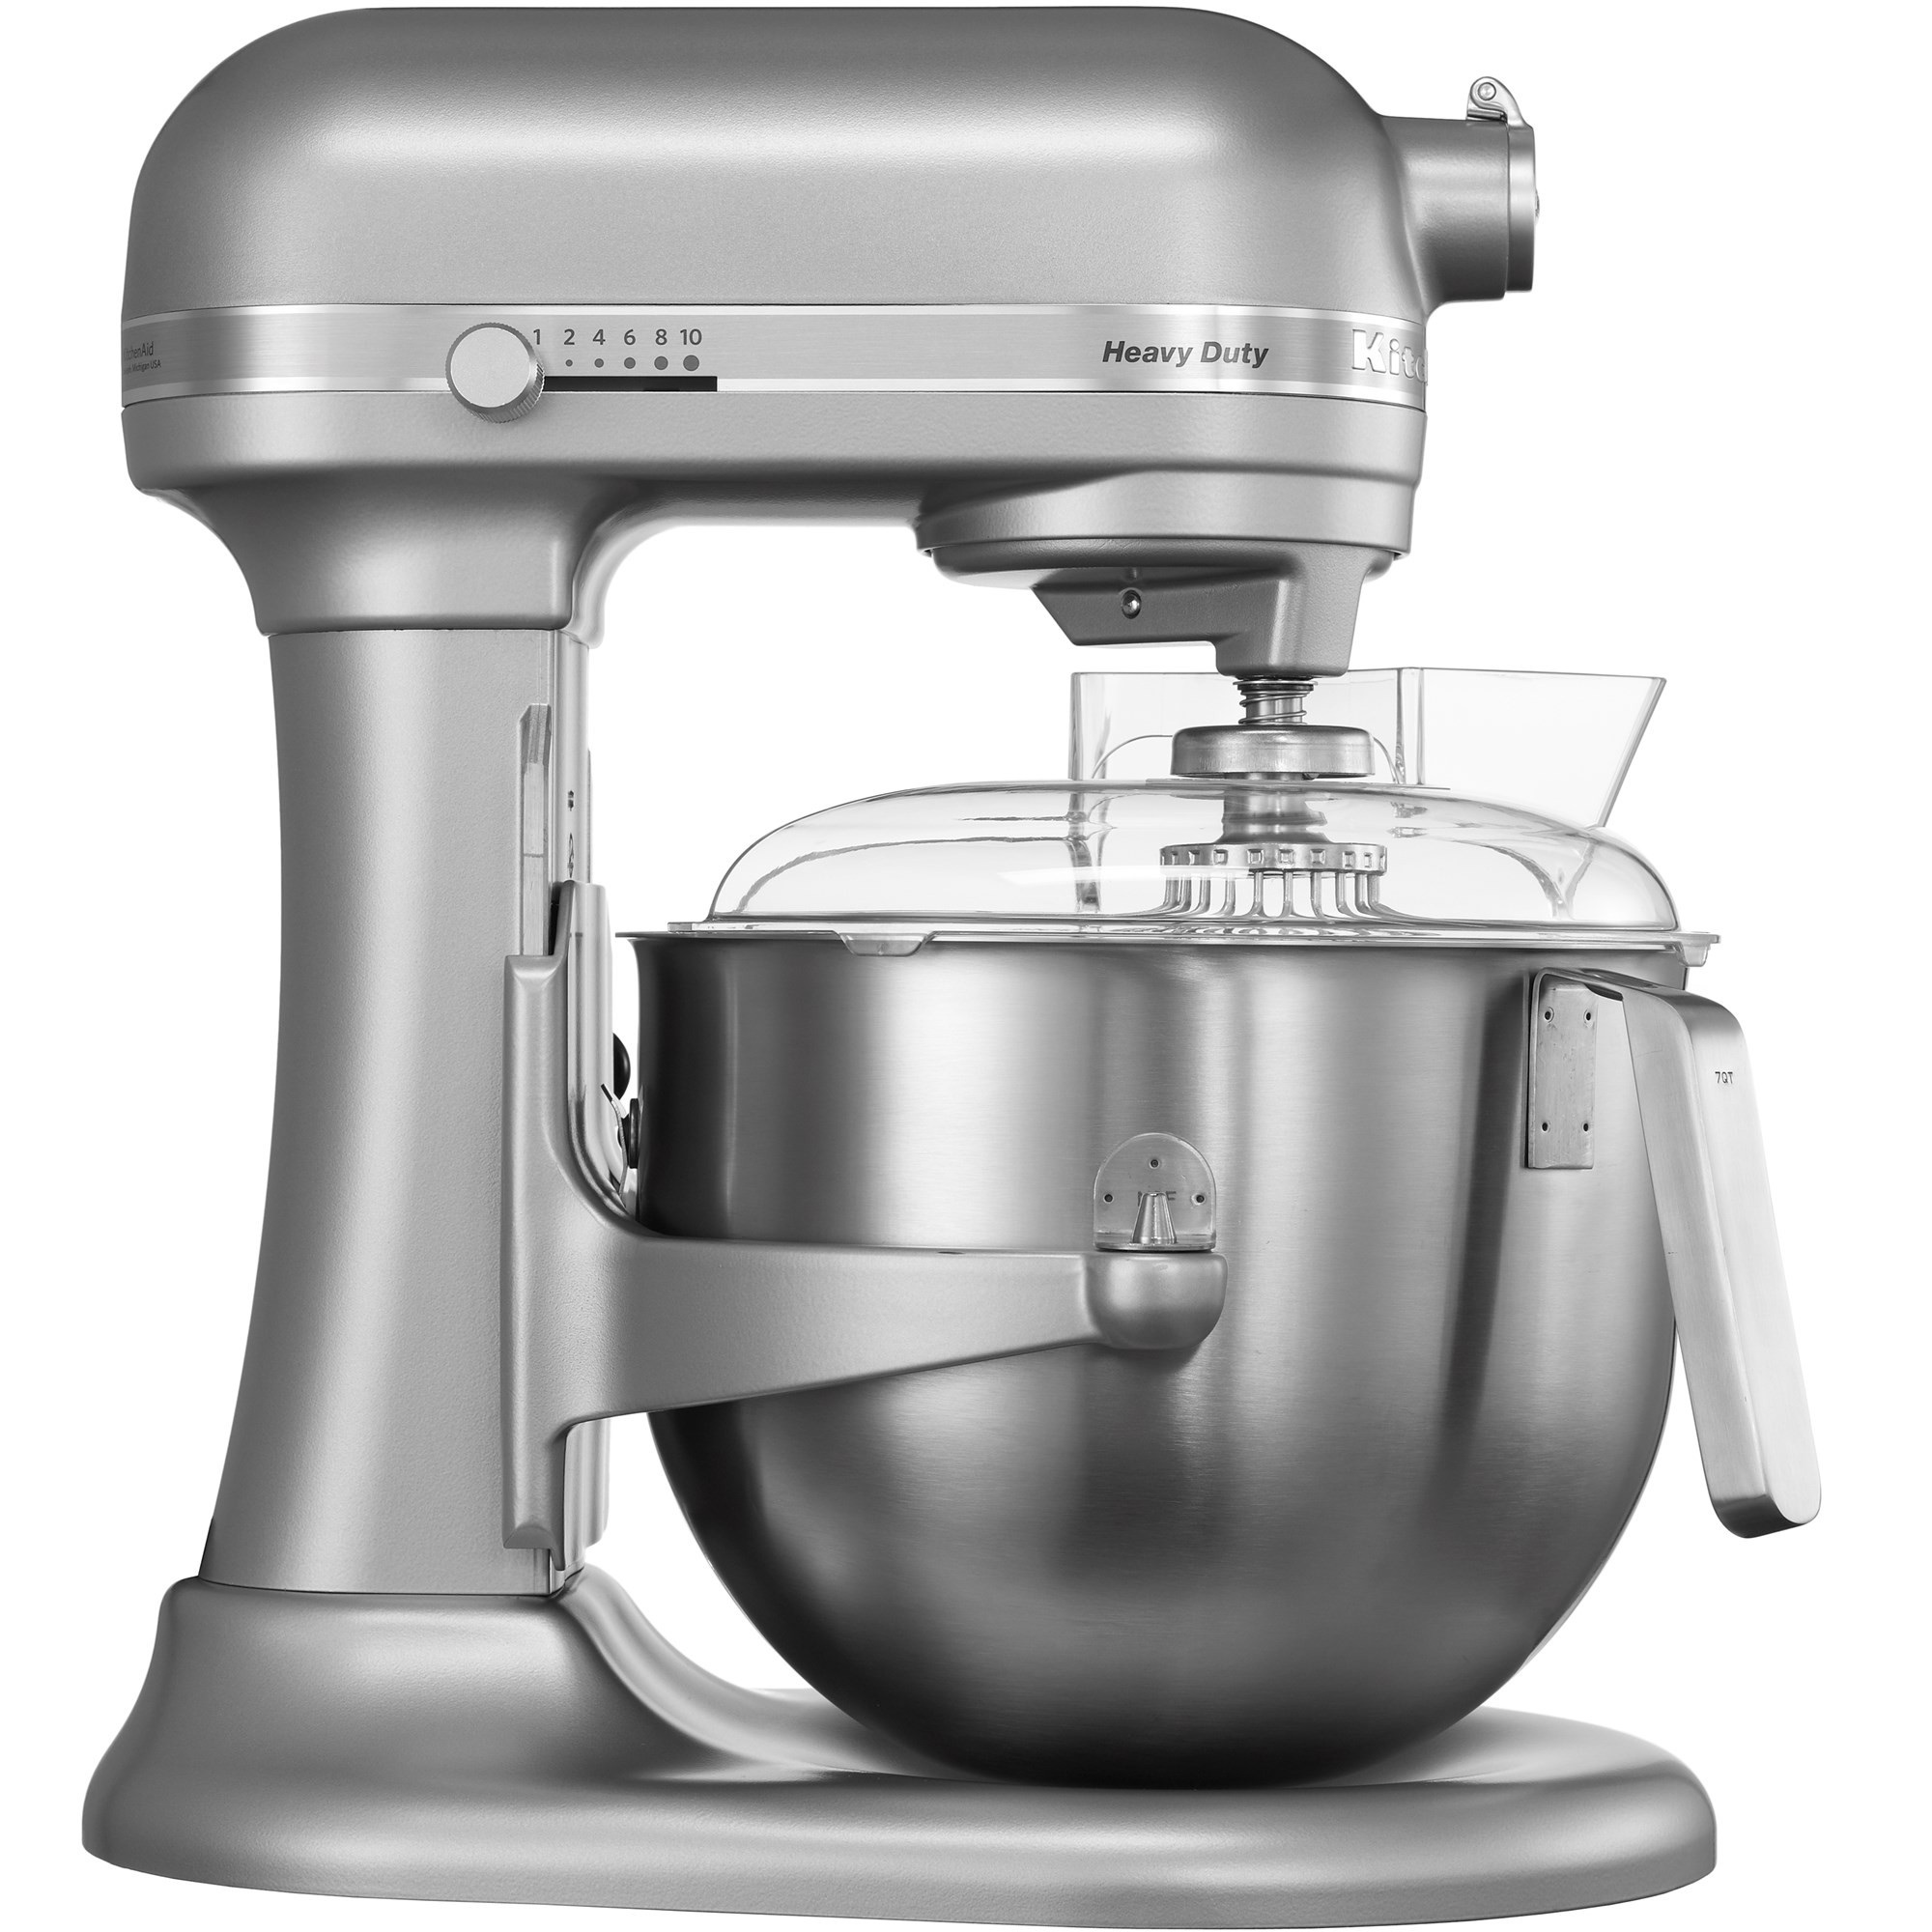 kitchenaid heavy duty mixer metallic silver irish. Black Bedroom Furniture Sets. Home Design Ideas